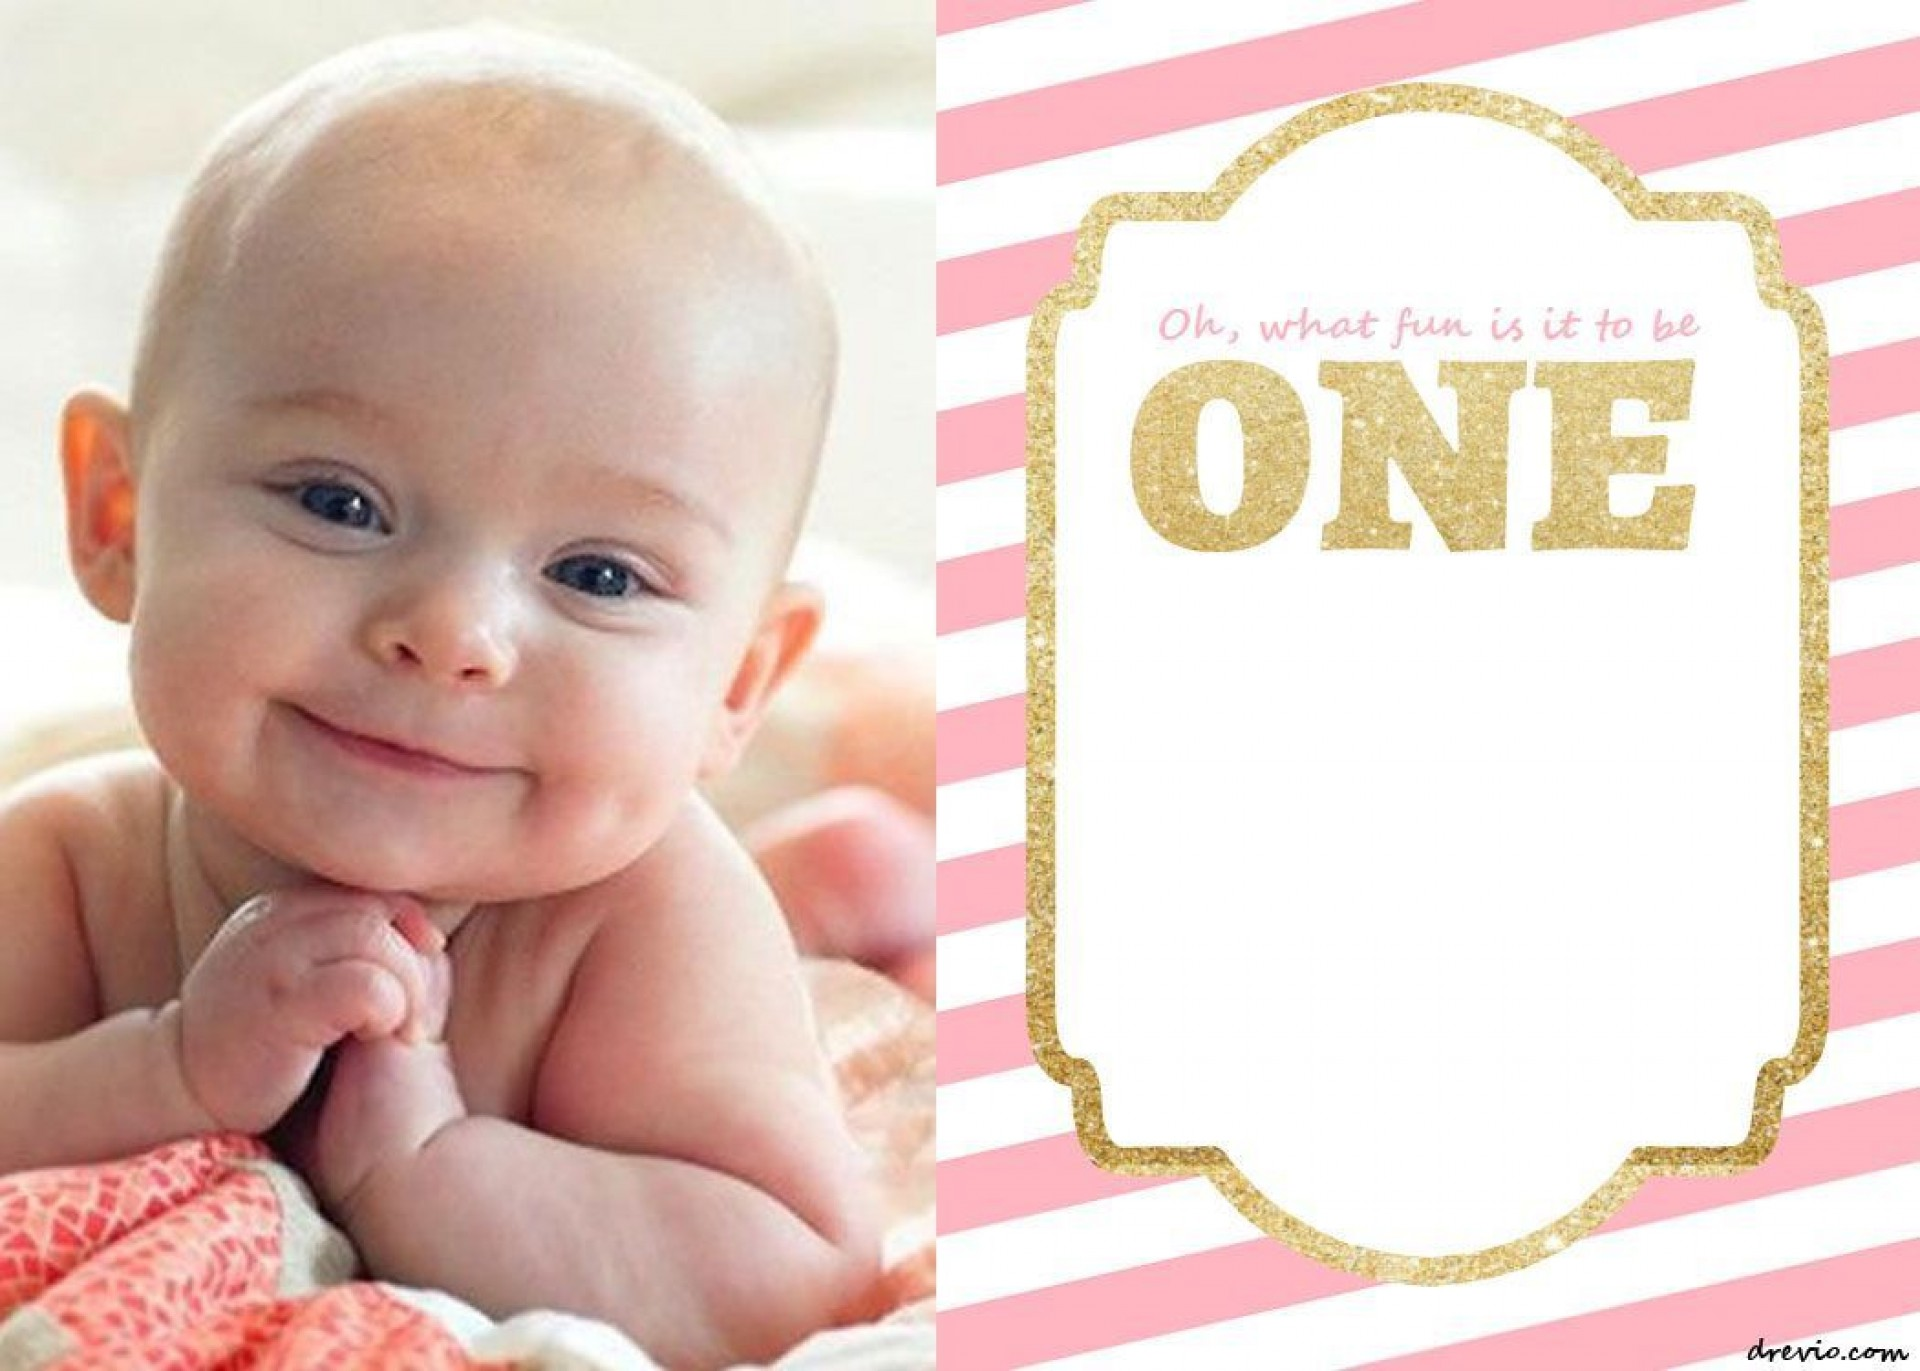 005 Unique 1st Birthday Invitation Template Highest Quality  Background Design Blank For Girl First Baby Boy Free Download Indian1920